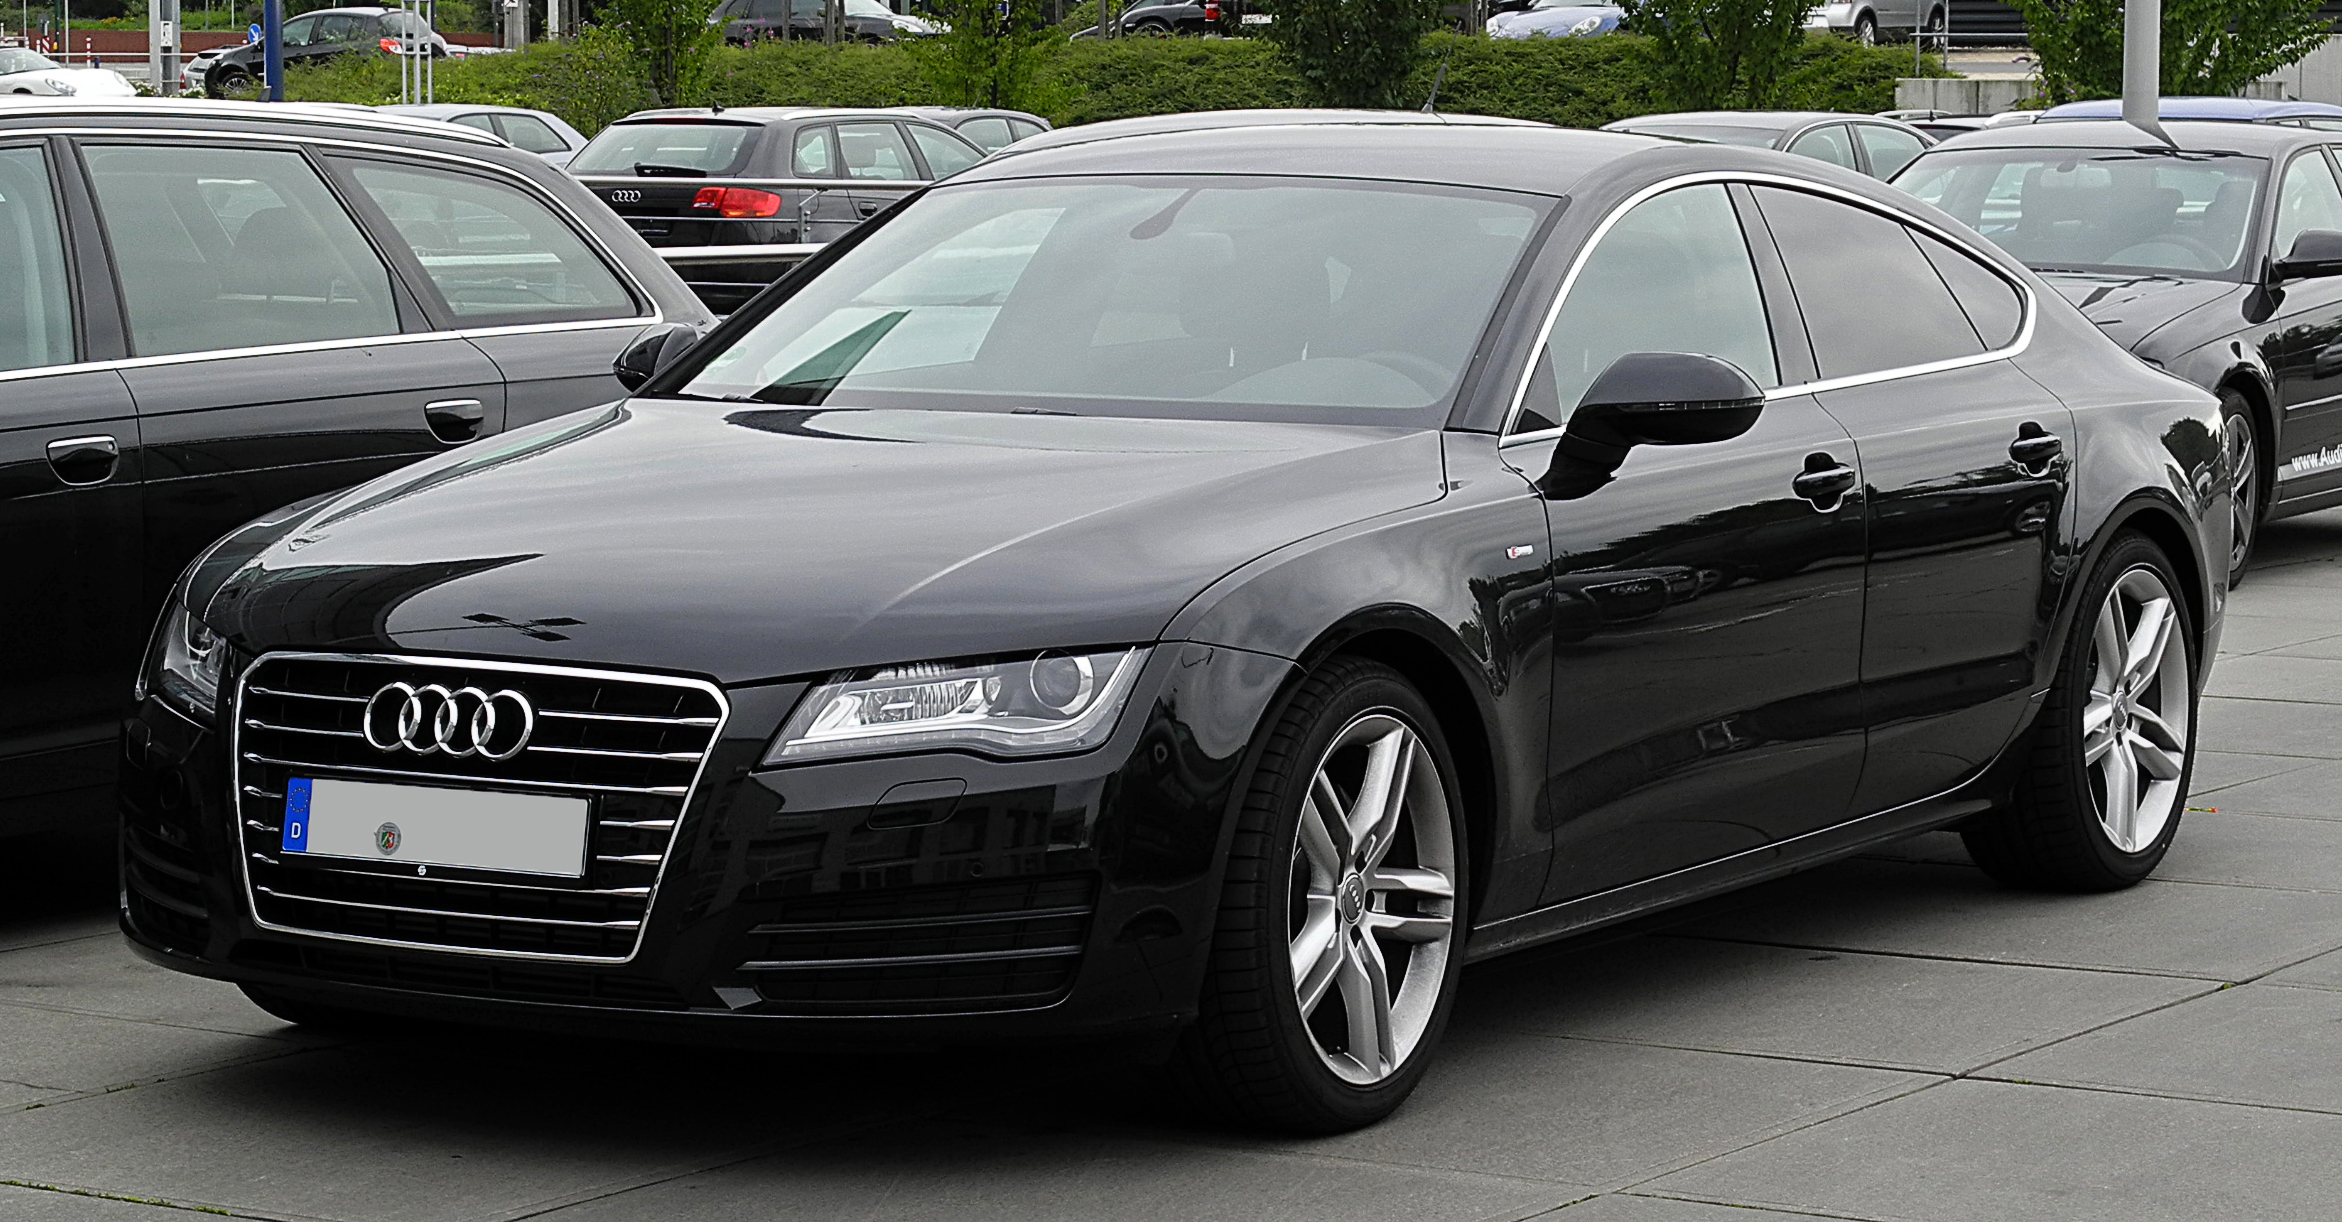 2014 audi a7 sportback 4g pictures information and specs auto. Black Bedroom Furniture Sets. Home Design Ideas